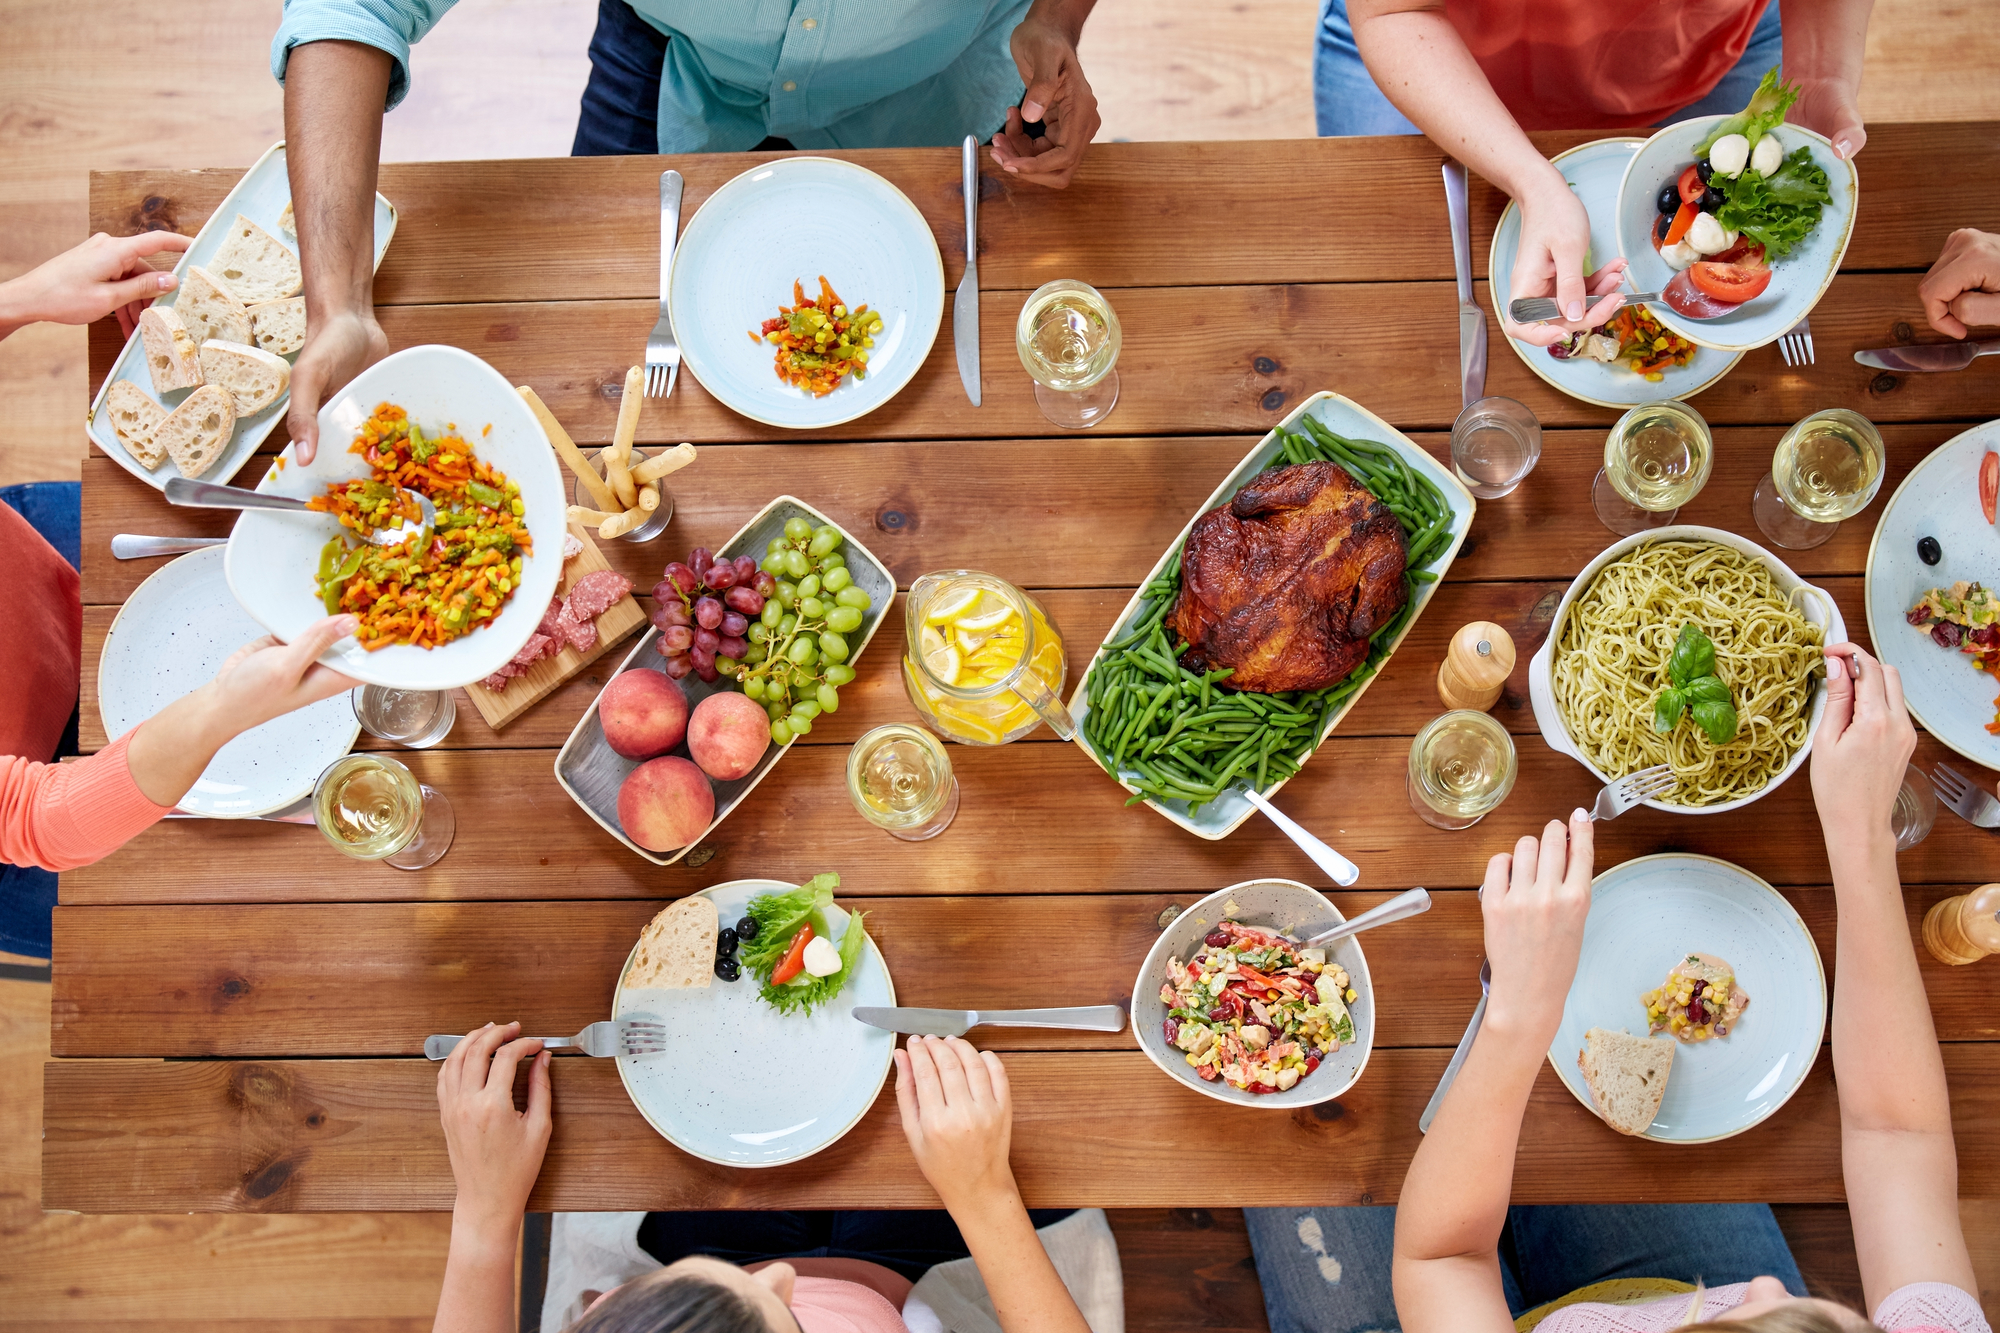 Family-style Meals: Benefits and Blueprint